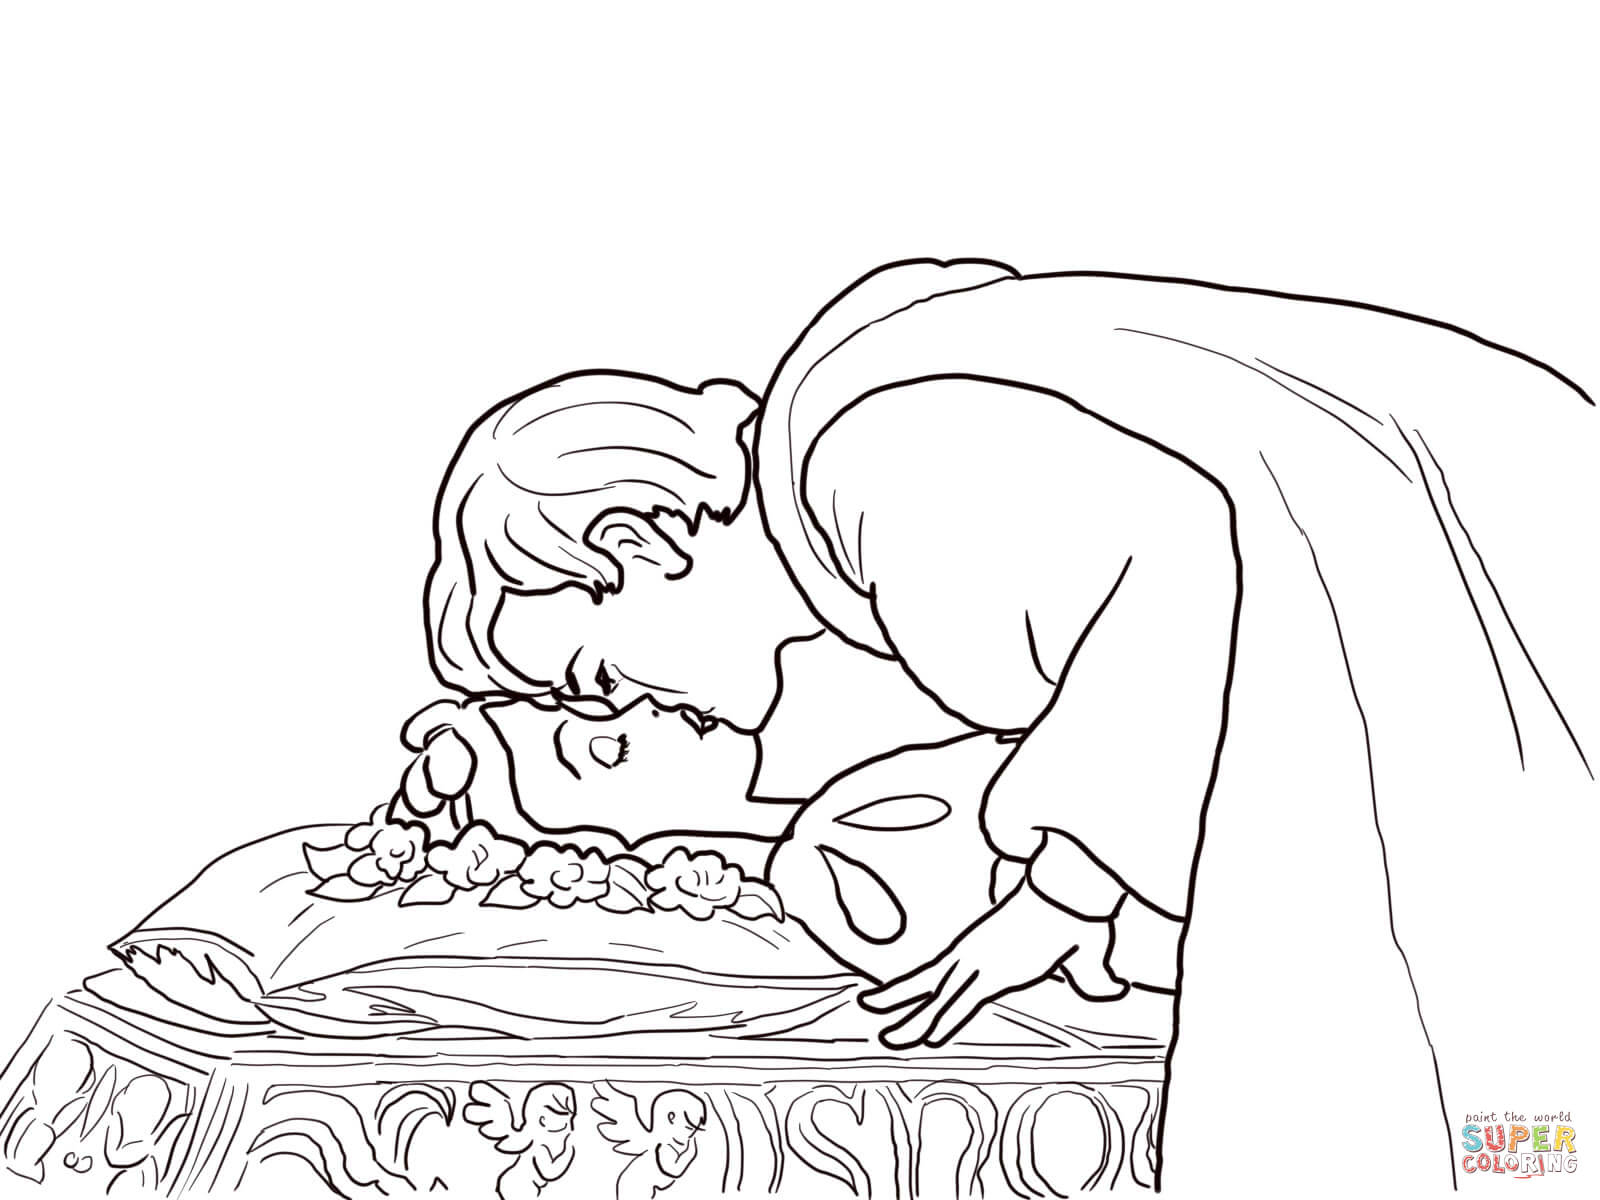 Coloriage - Le Prince Embrasse Blanche-Neige | Coloriages À destiné Blanche Neige À Colorier Et Imprimer